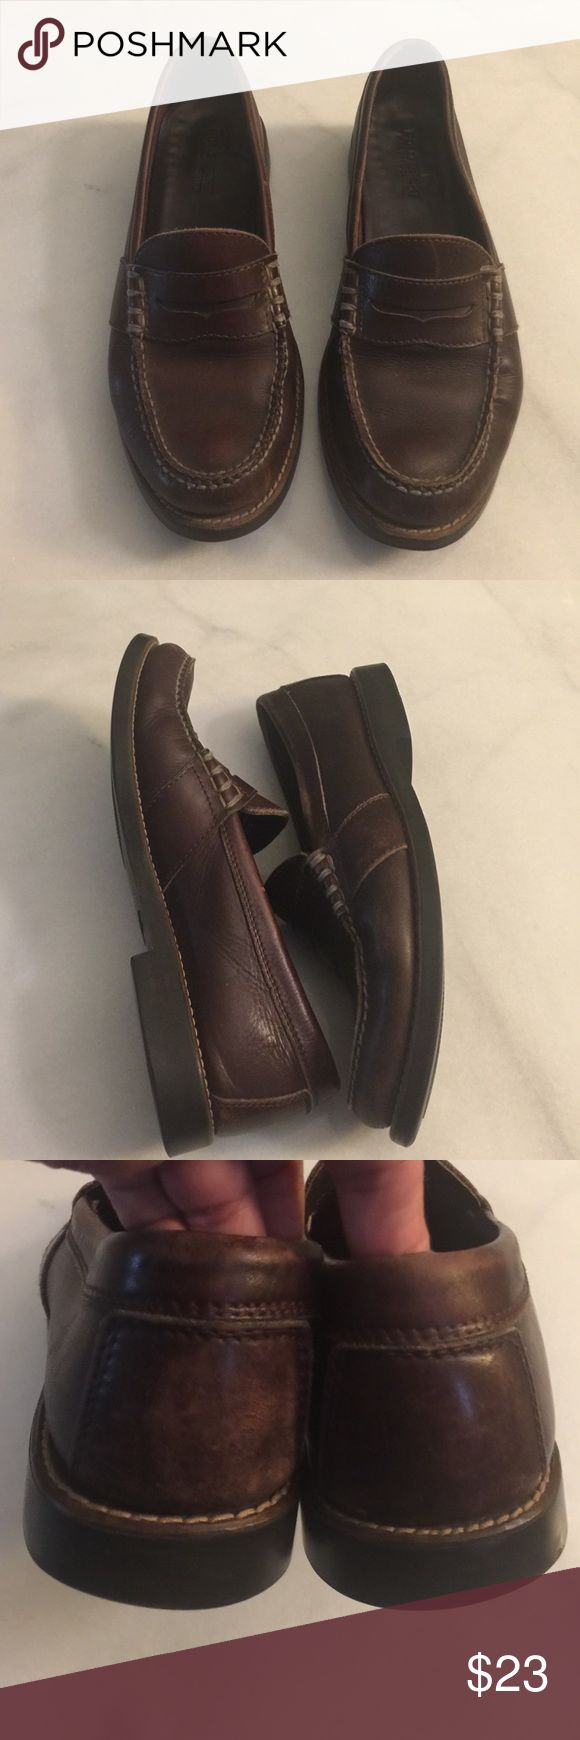 Polo sport Ralph Lauren leather shoes Pre own no trade no LOWBALLS & half price offers will not be accepted. Leather upper polo sport Ralph Lauren Shoes